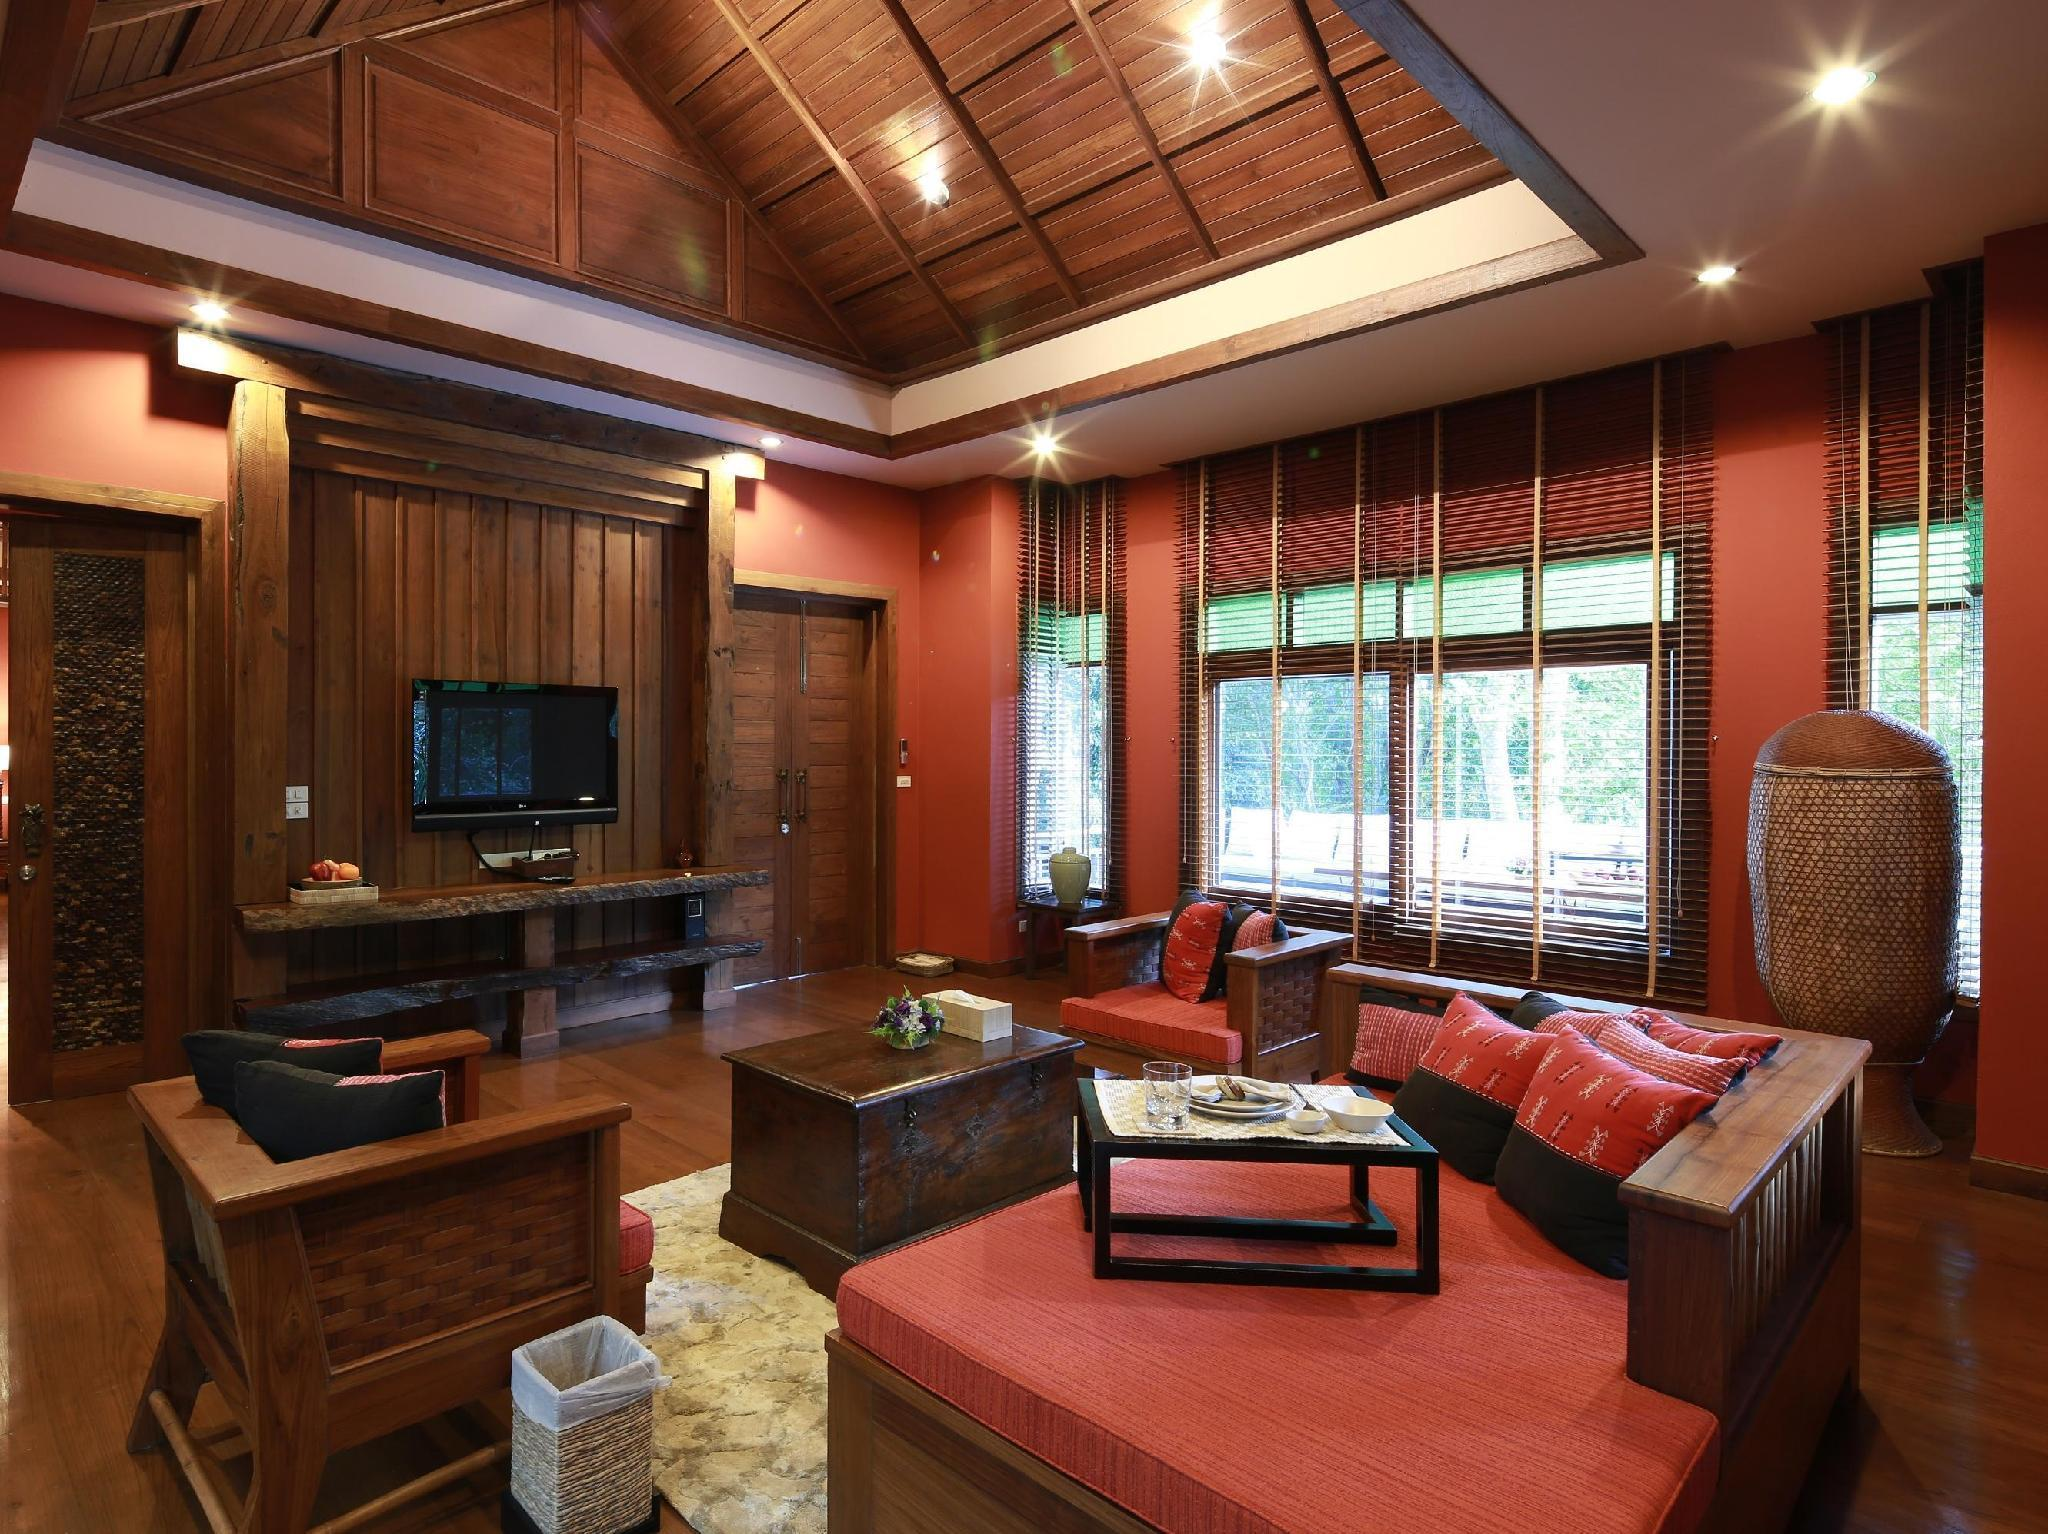 2 Bedroom Executive Suite Villa